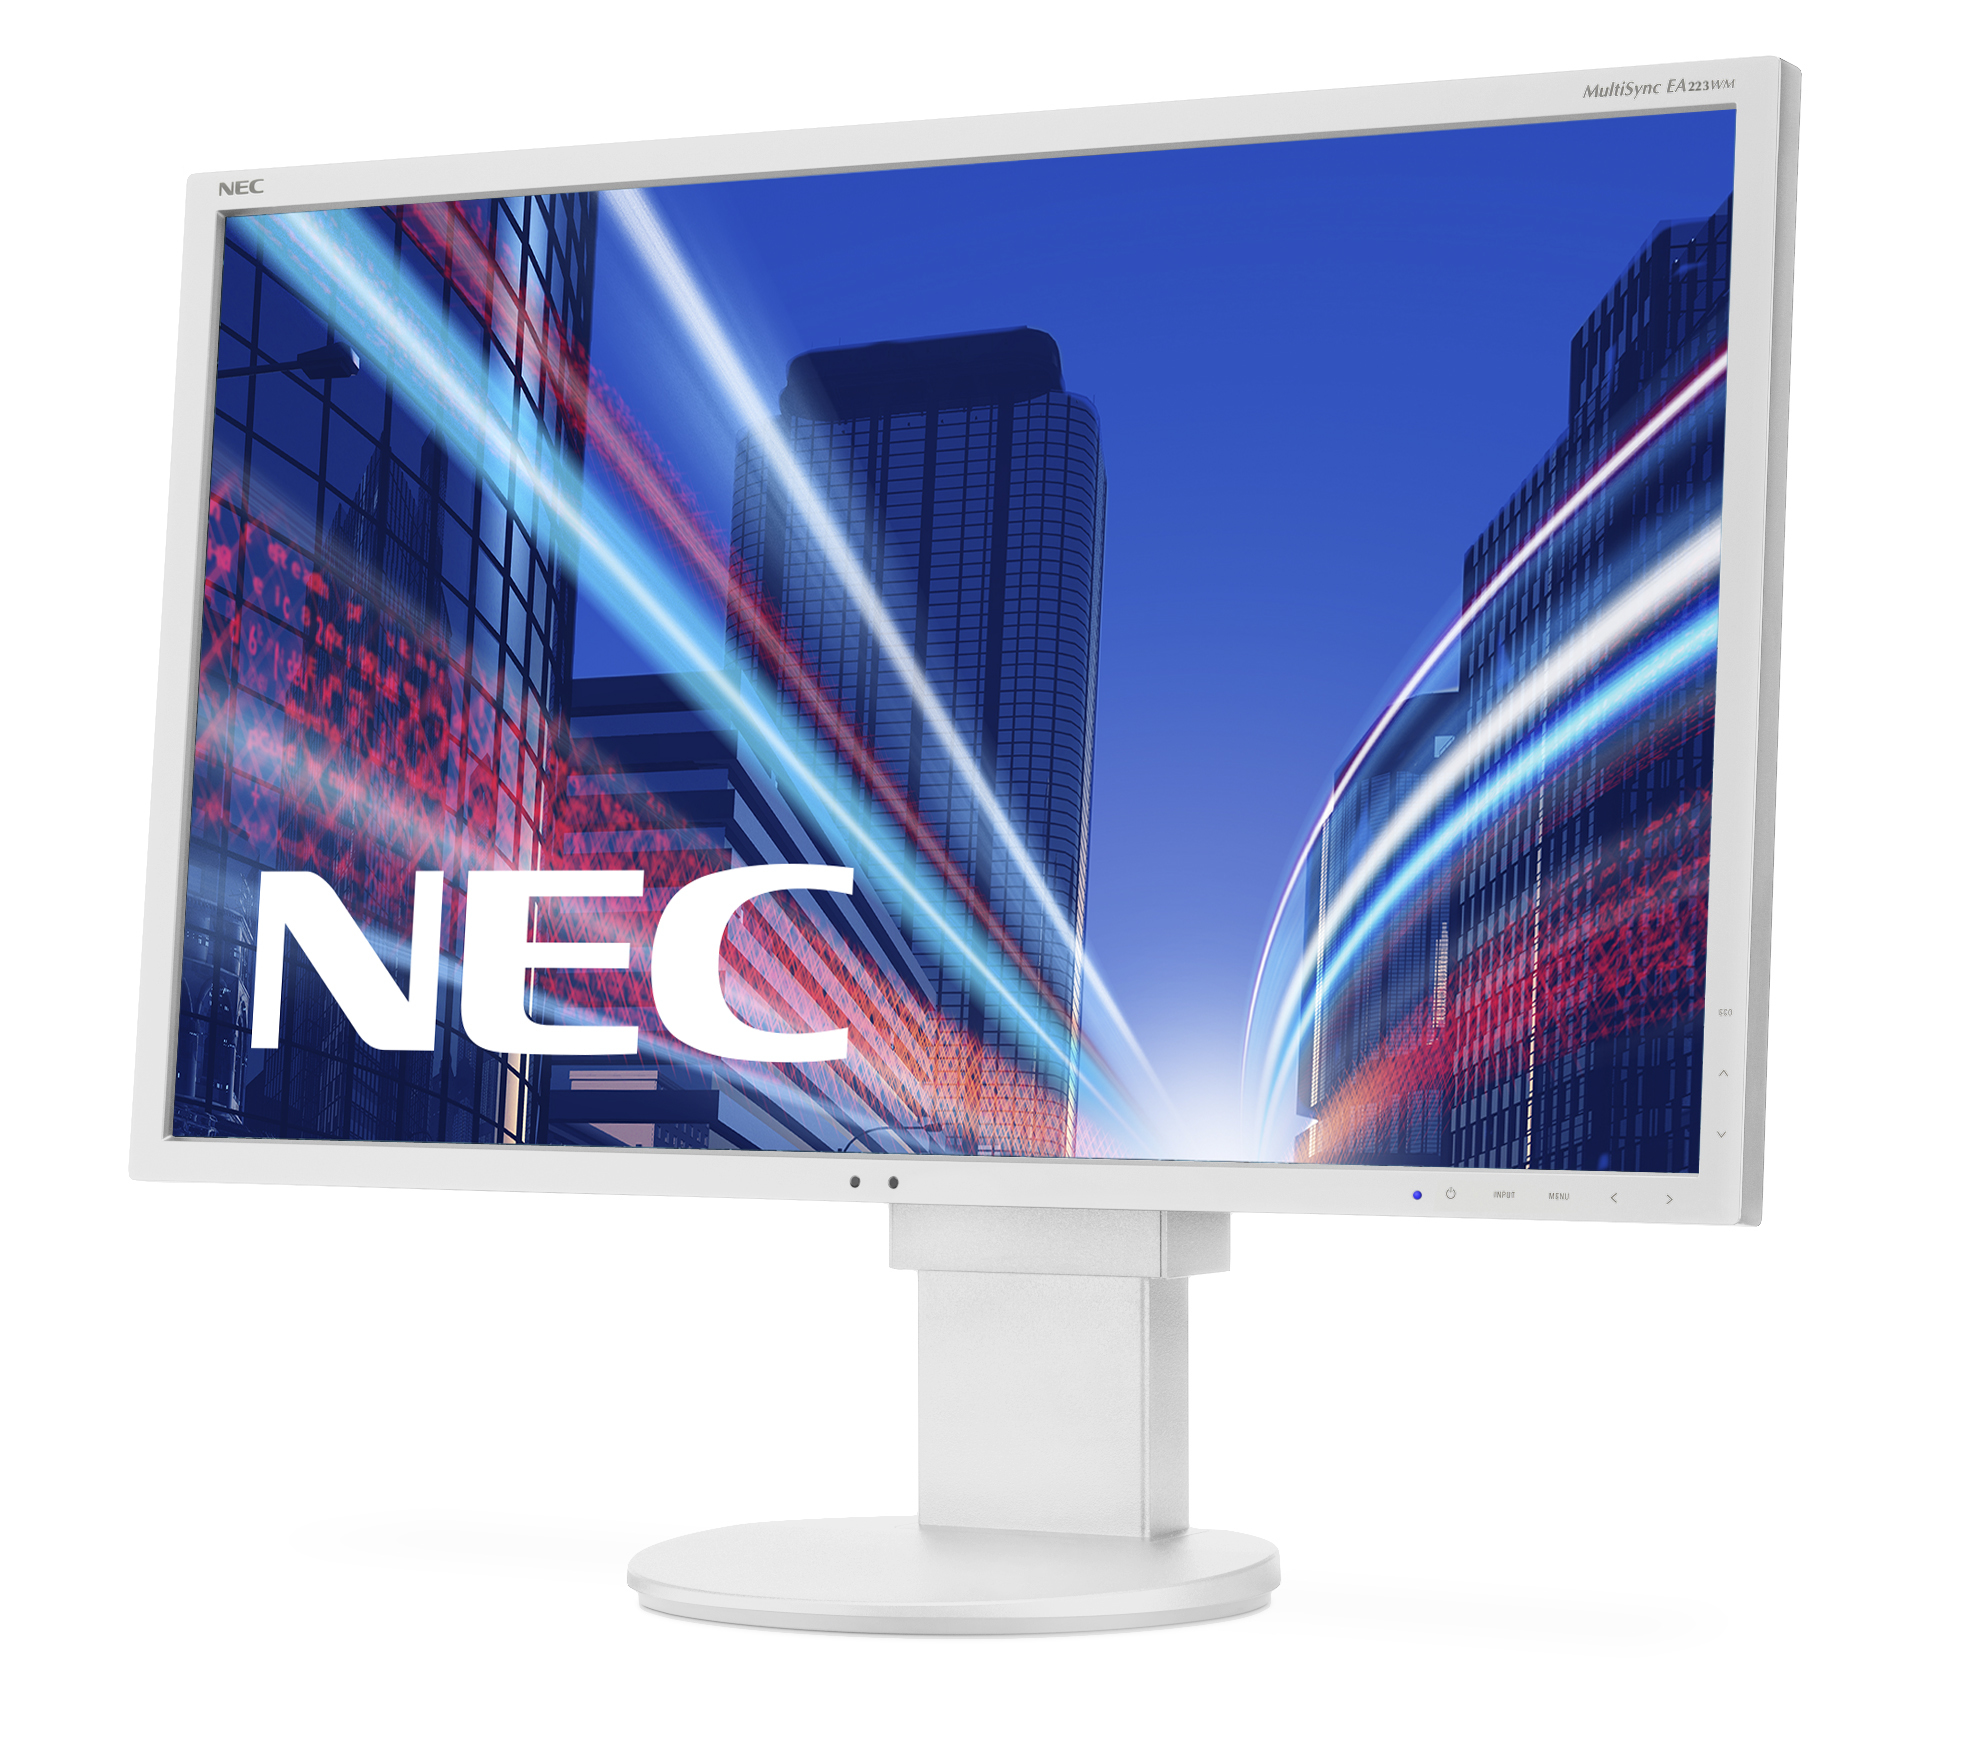 Desktop Monitor - Multisync Ea223wm - 22in - 1920x1080 (full Hd) - White With Adjustable Stand